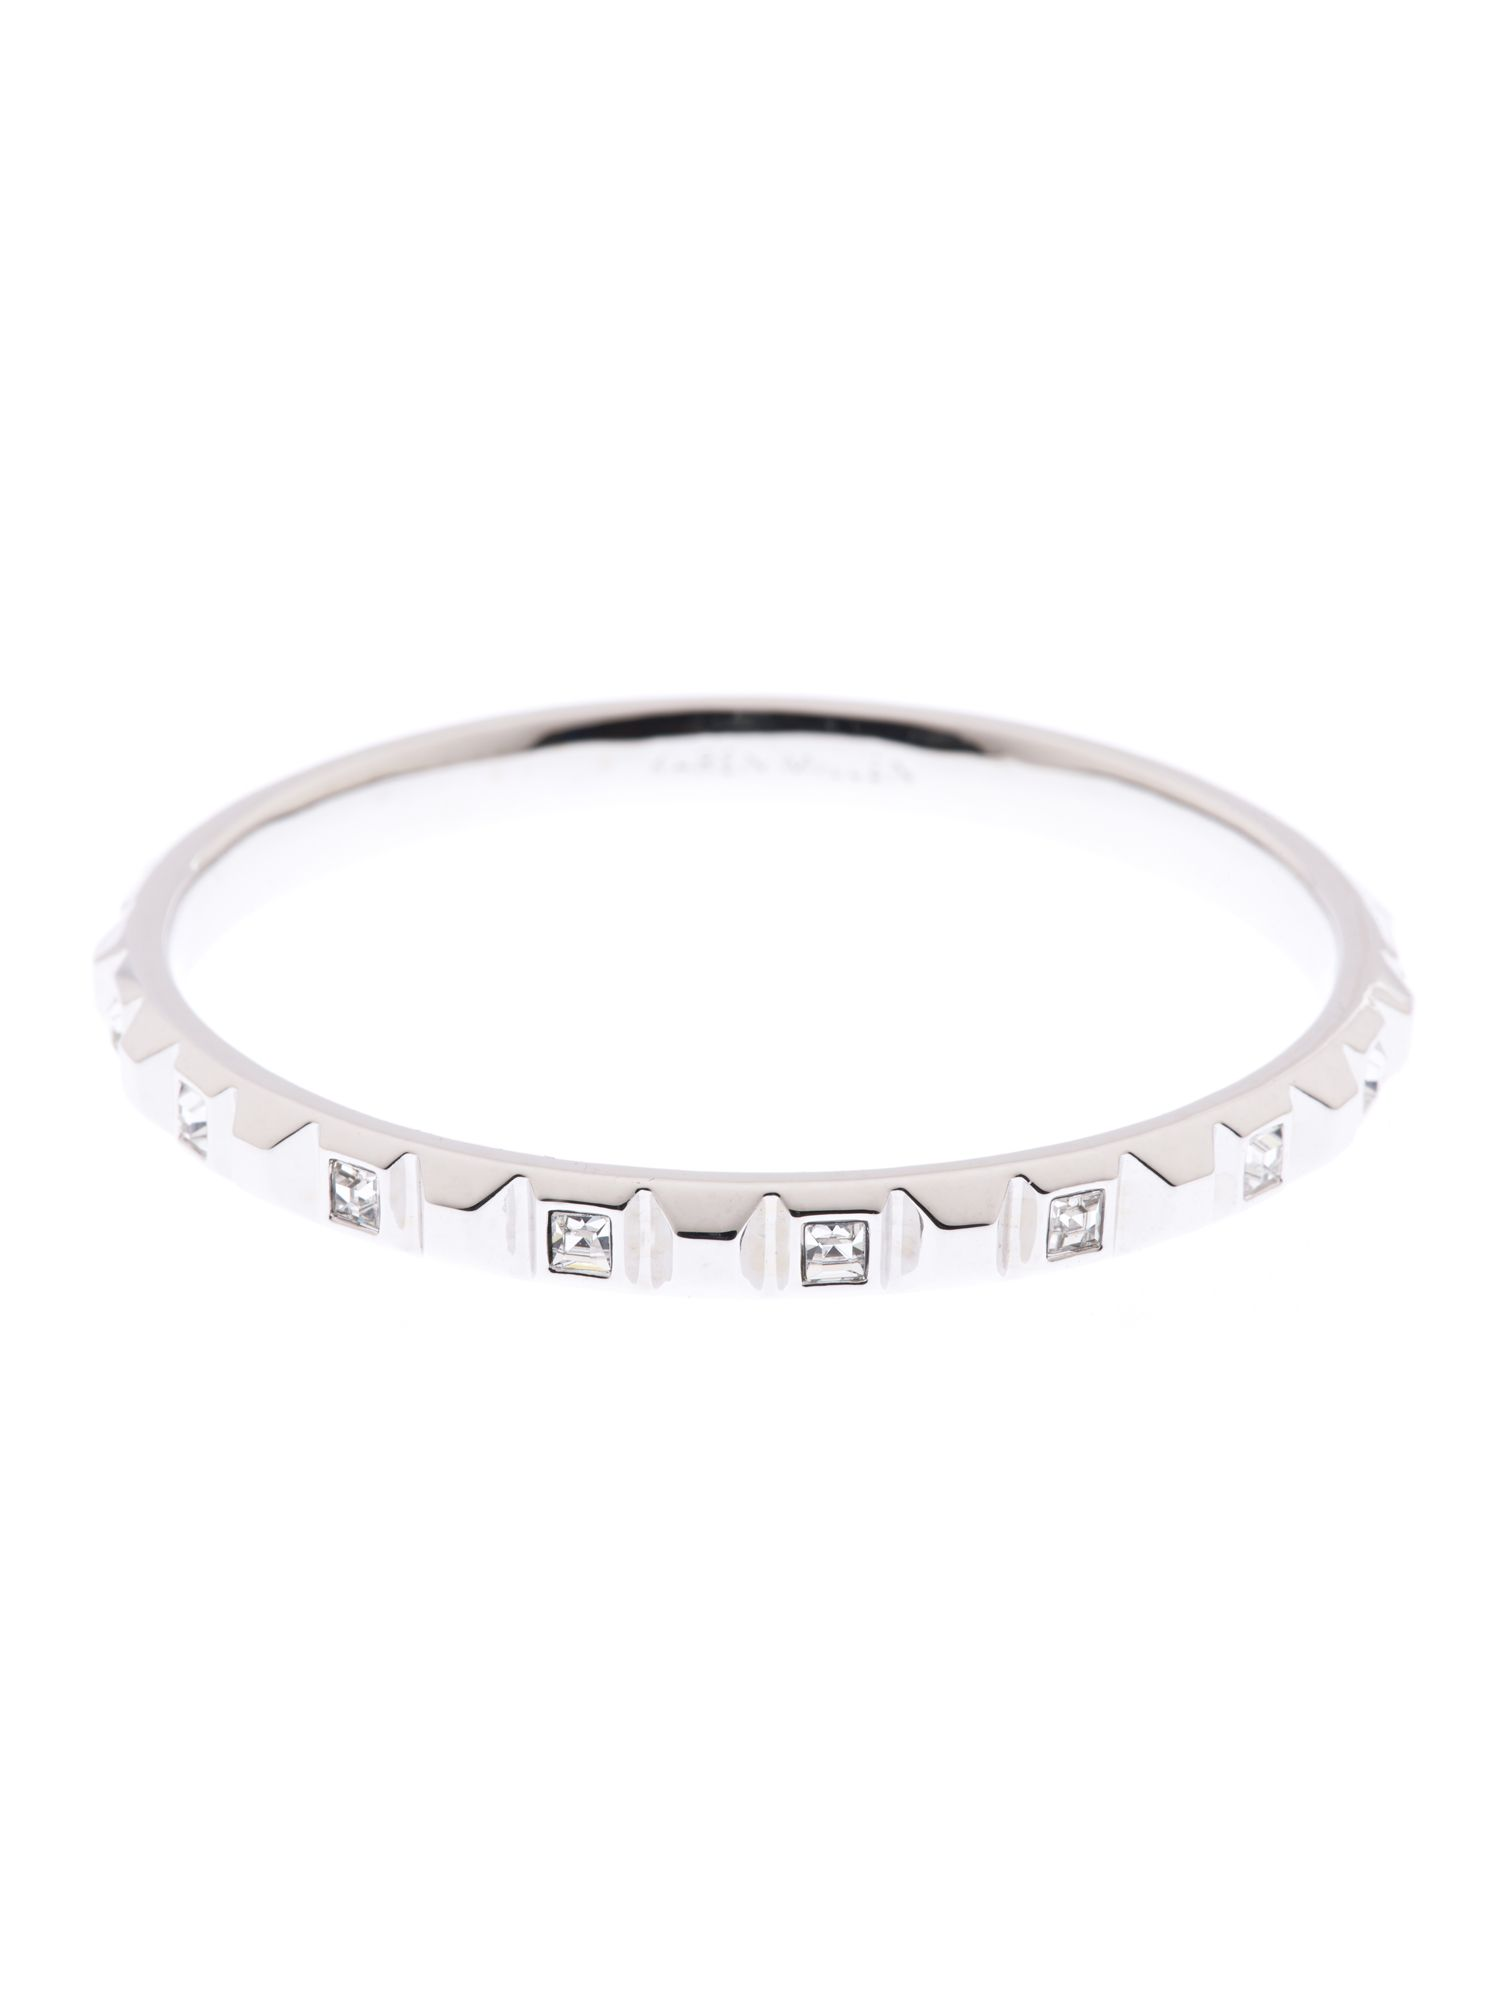 Square crystal stud bangle